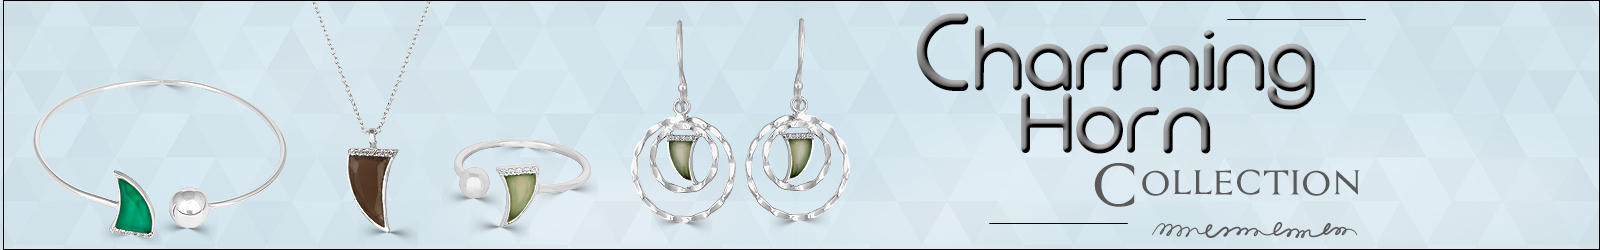 Designer Horn Gemstone Silver Jewelry Online Exporter, Supplier in India